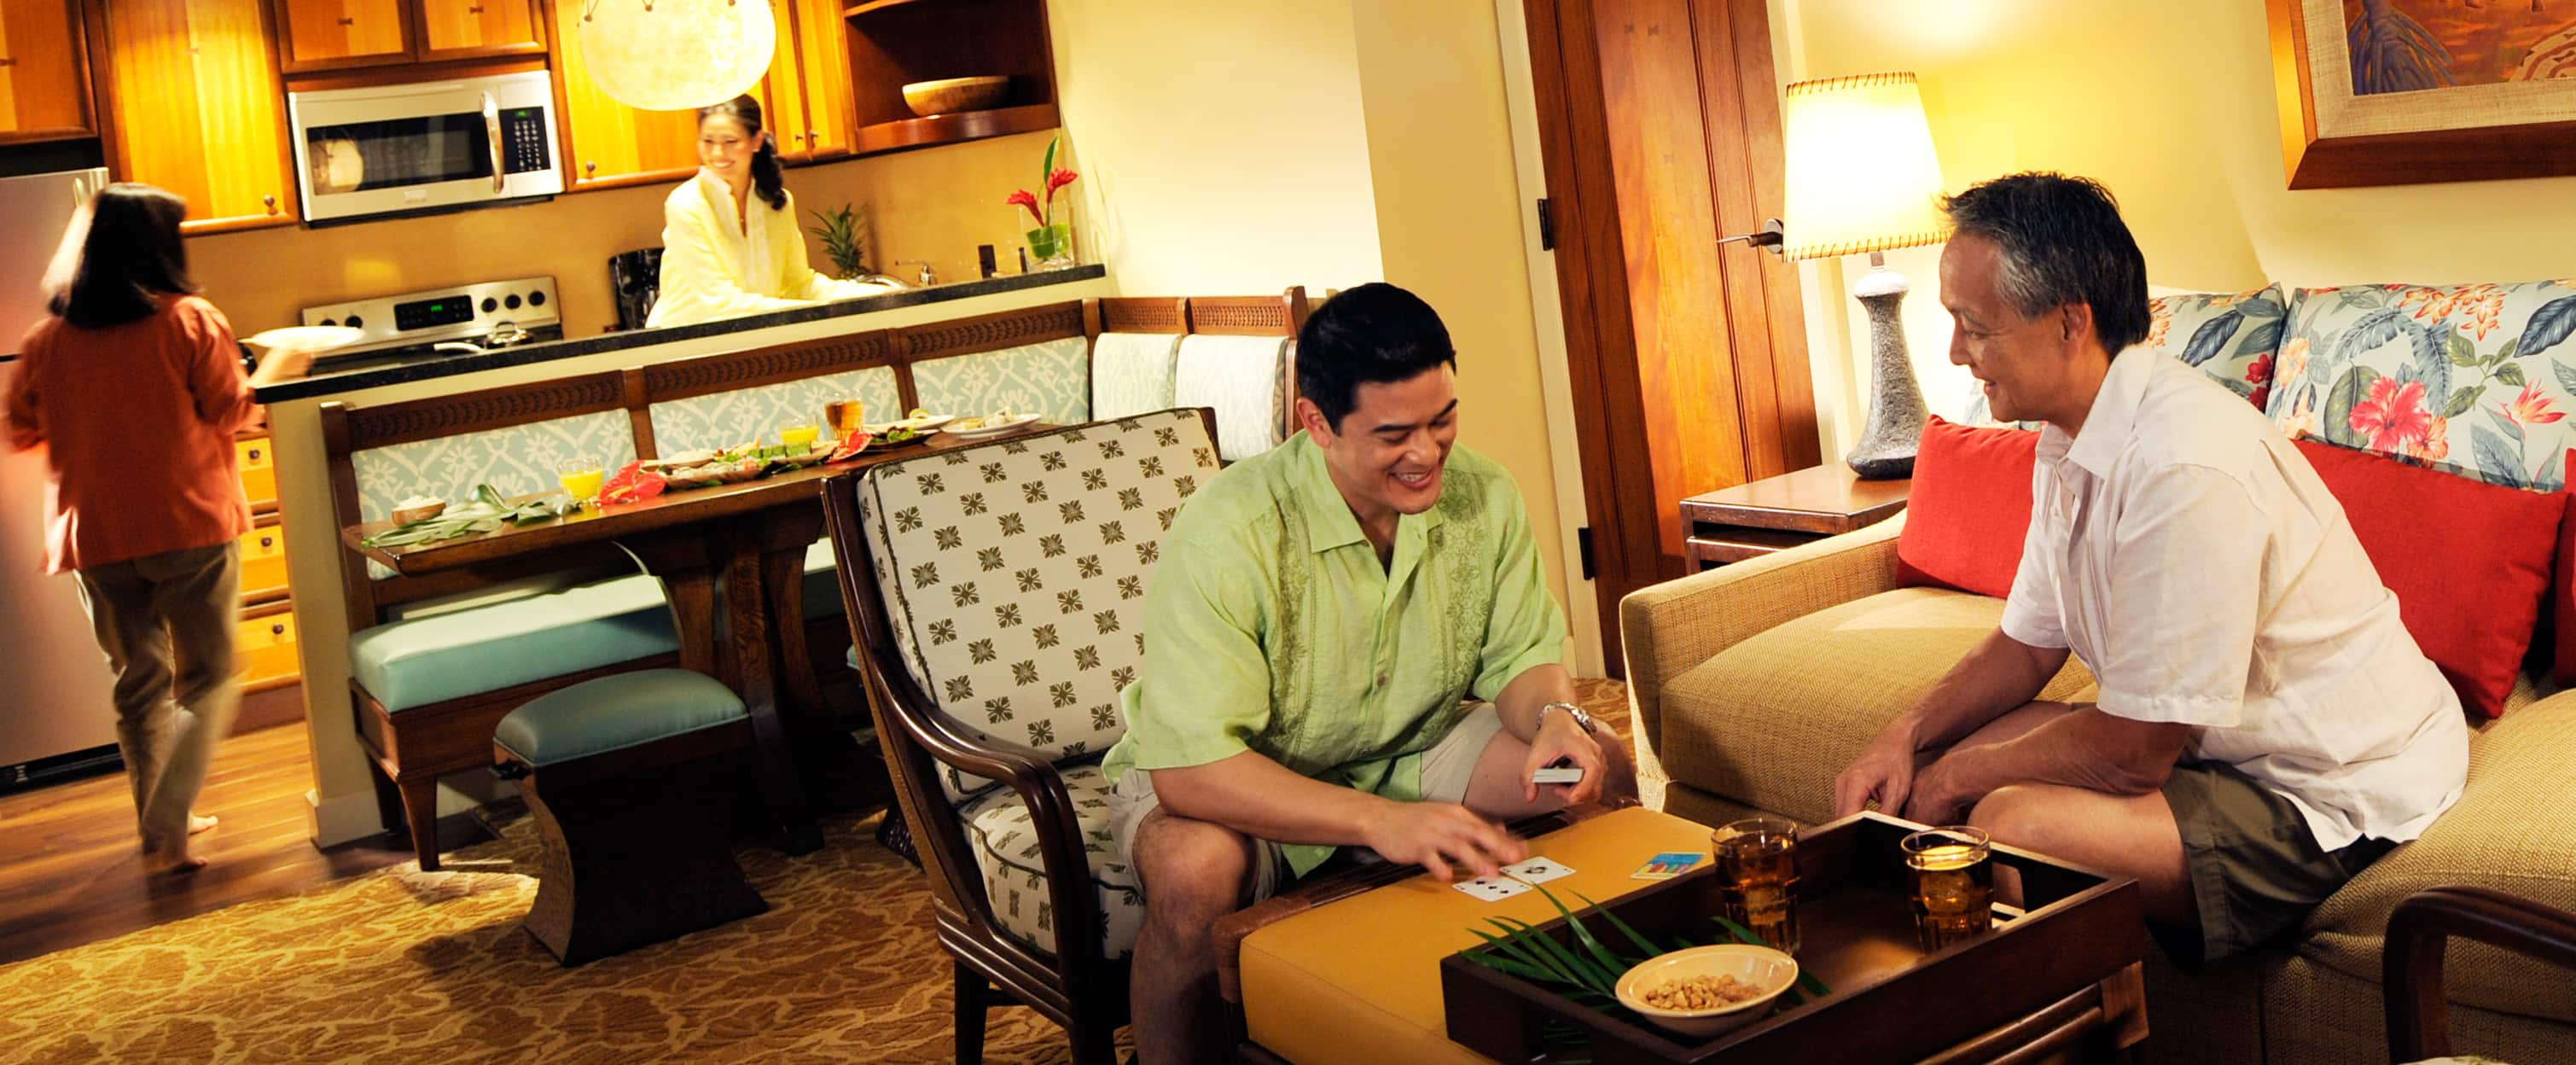 A family in the living area and kitchen of a 2-bedroom villa at Aulani Resort